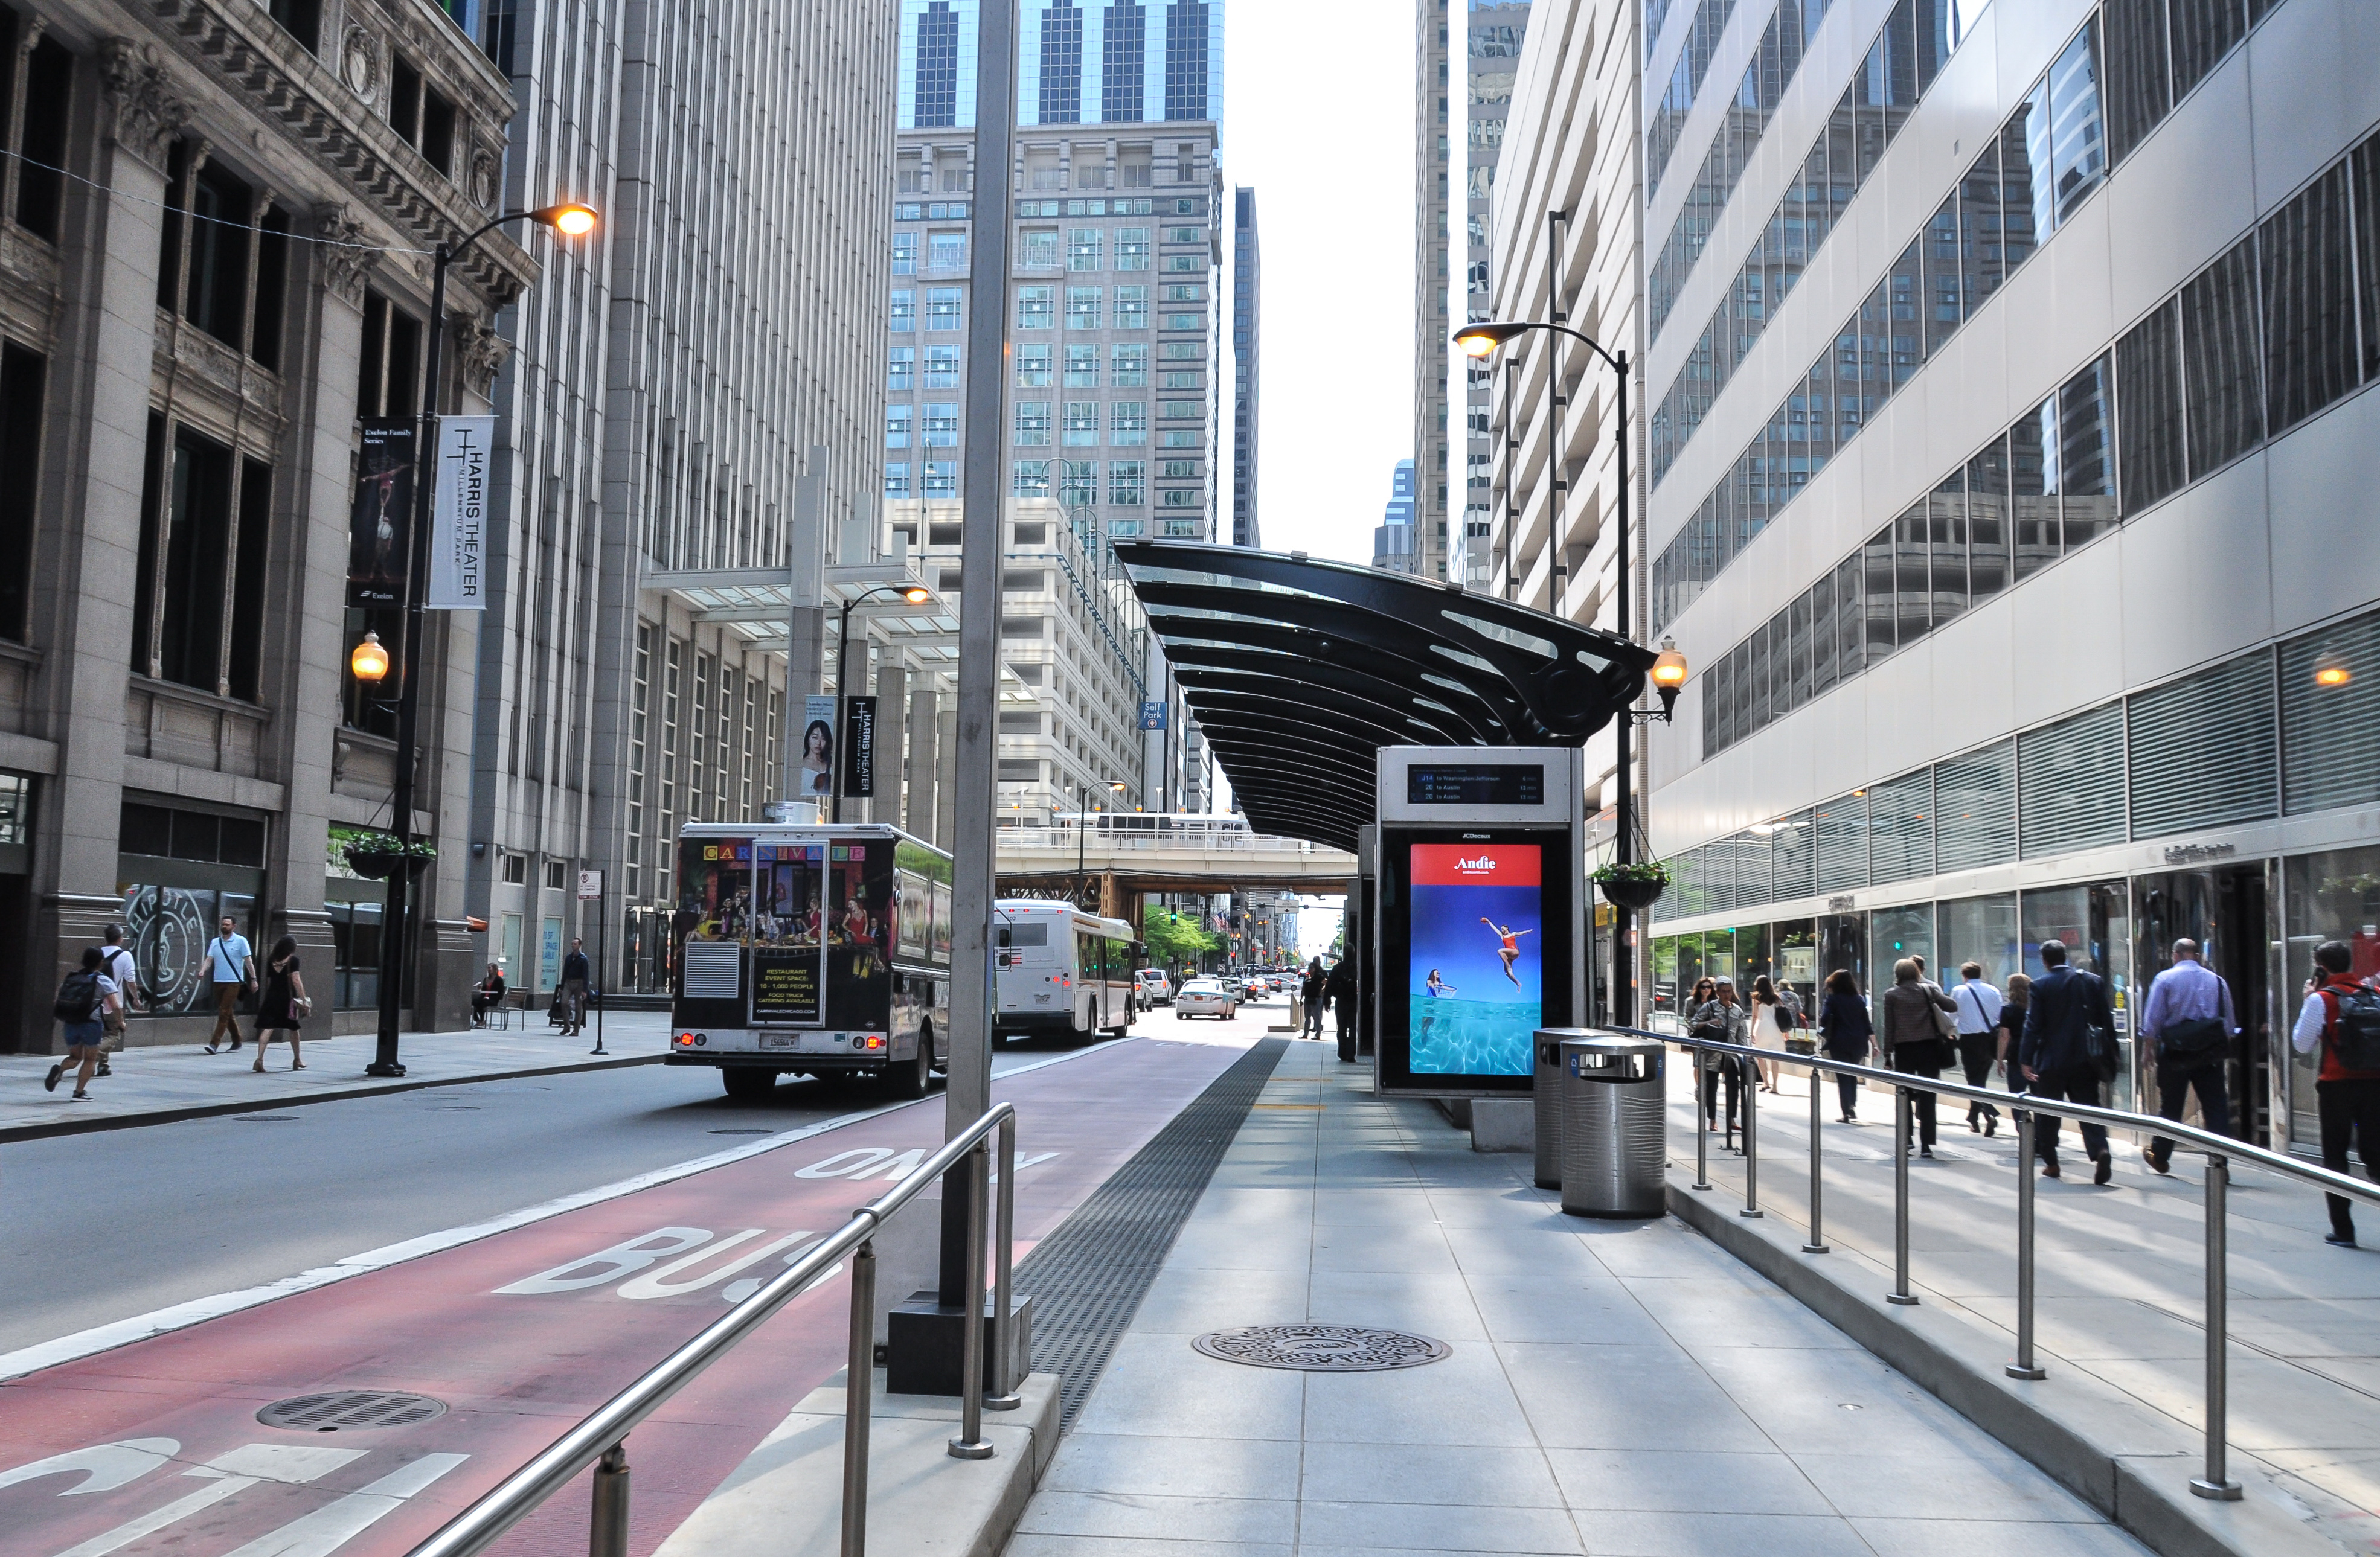 A red painted bus priority lane in downtown Chicago next to a bus shelter. There are tall buildings around the street and sidewalk.